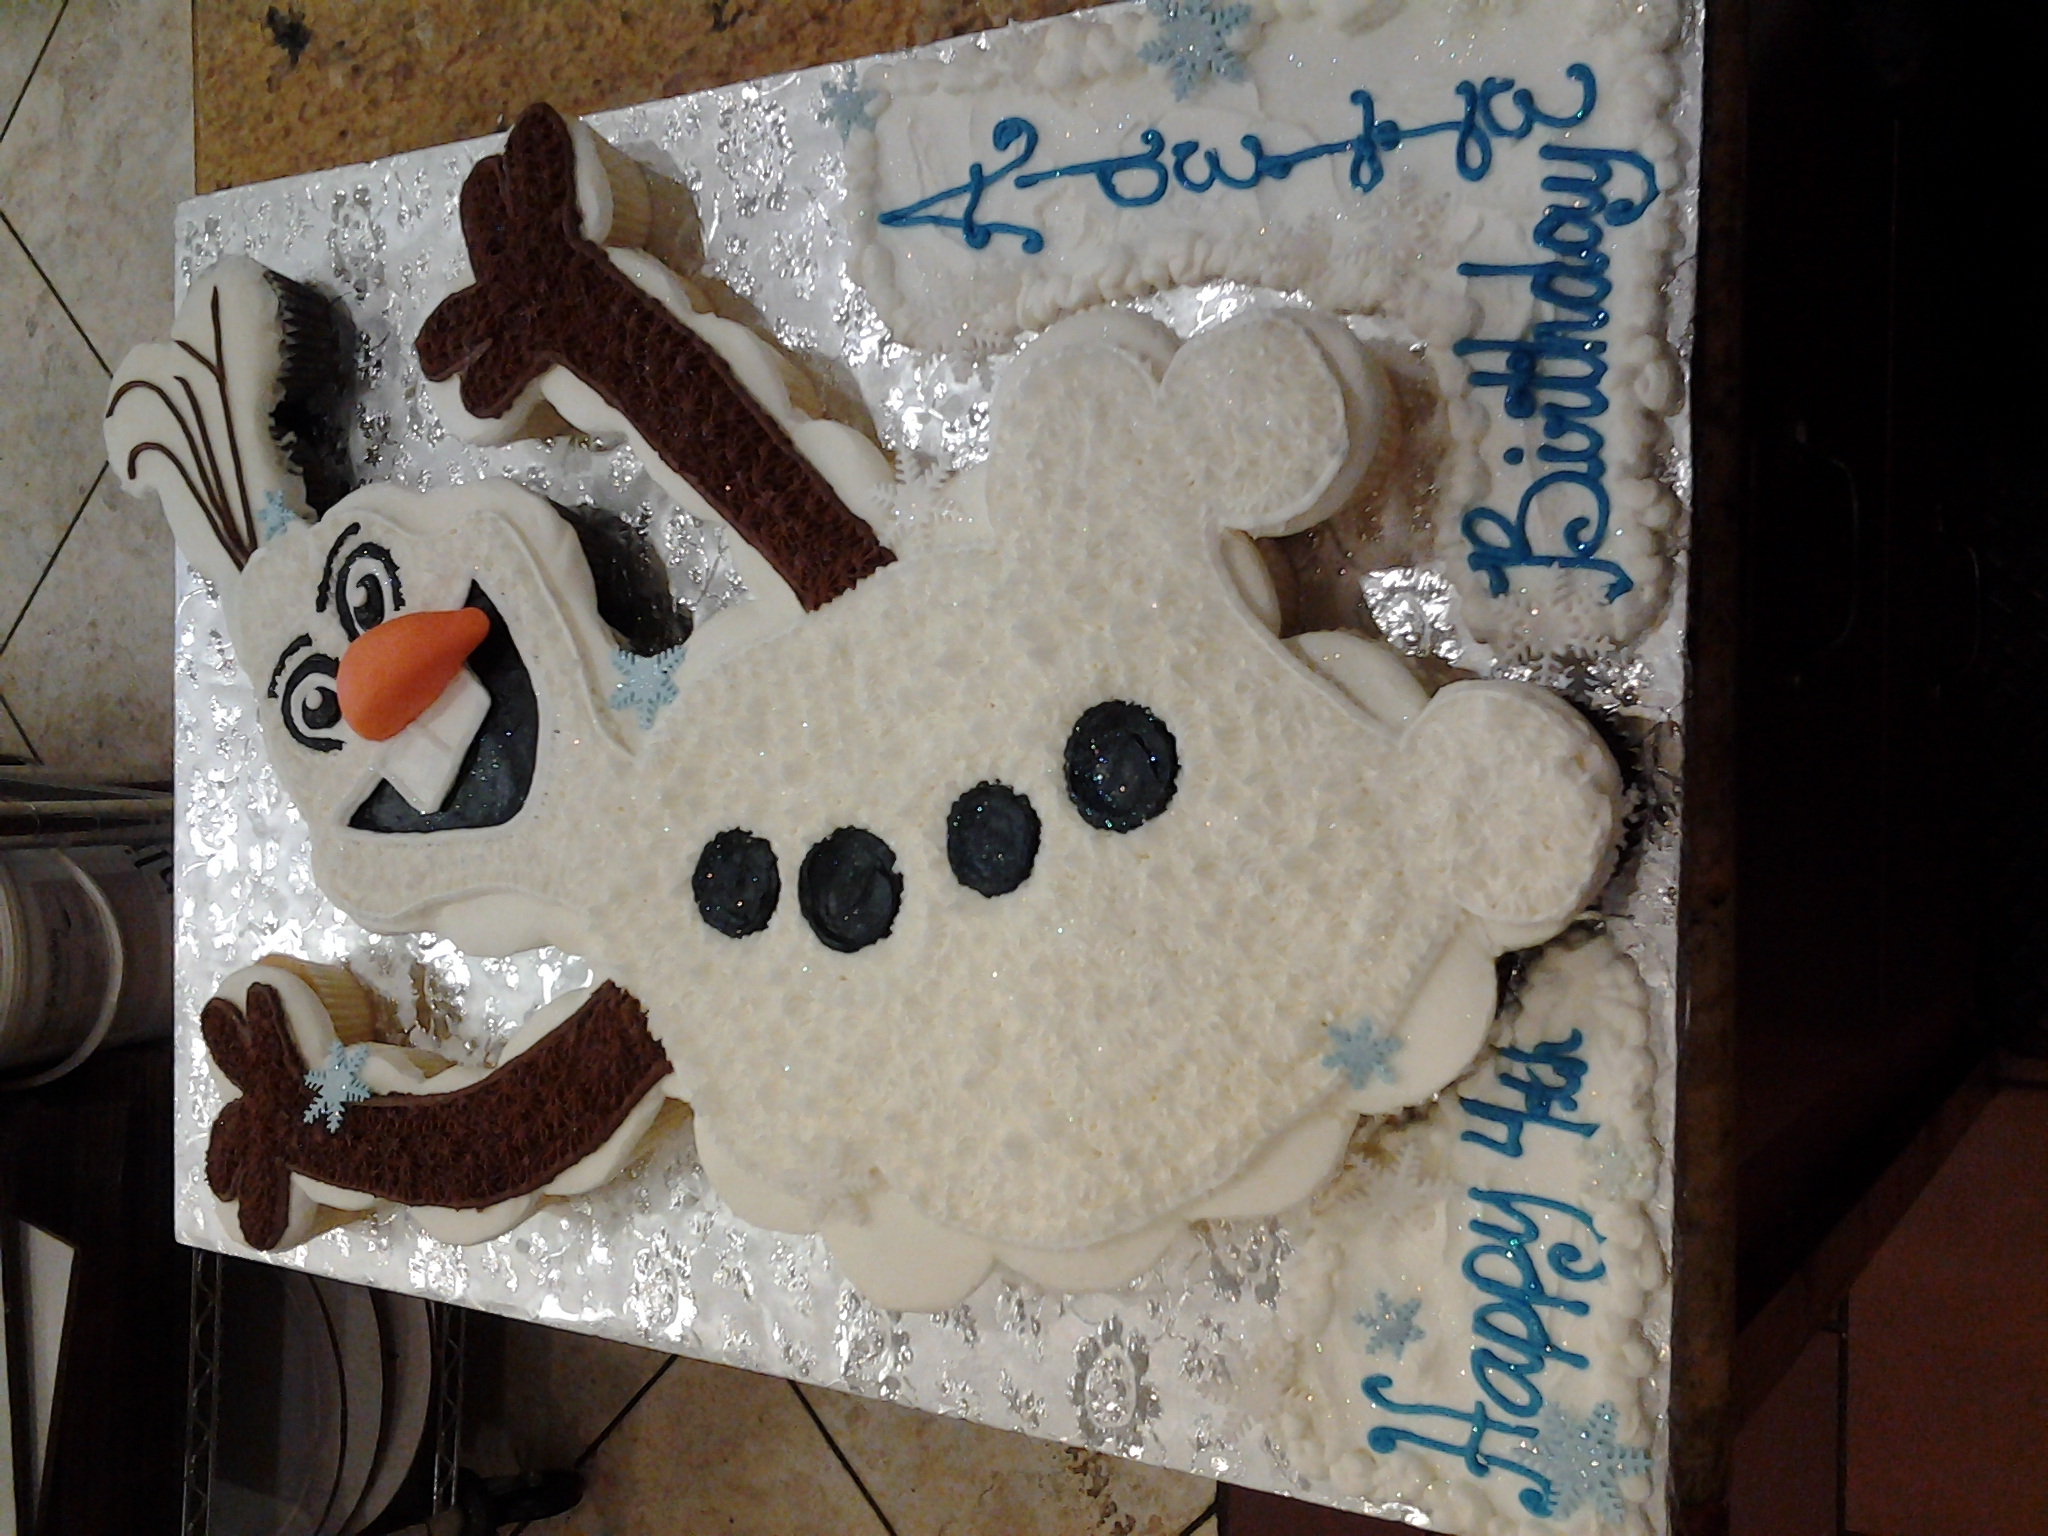 Cupcakes Frozen-Olaf in cupcakes